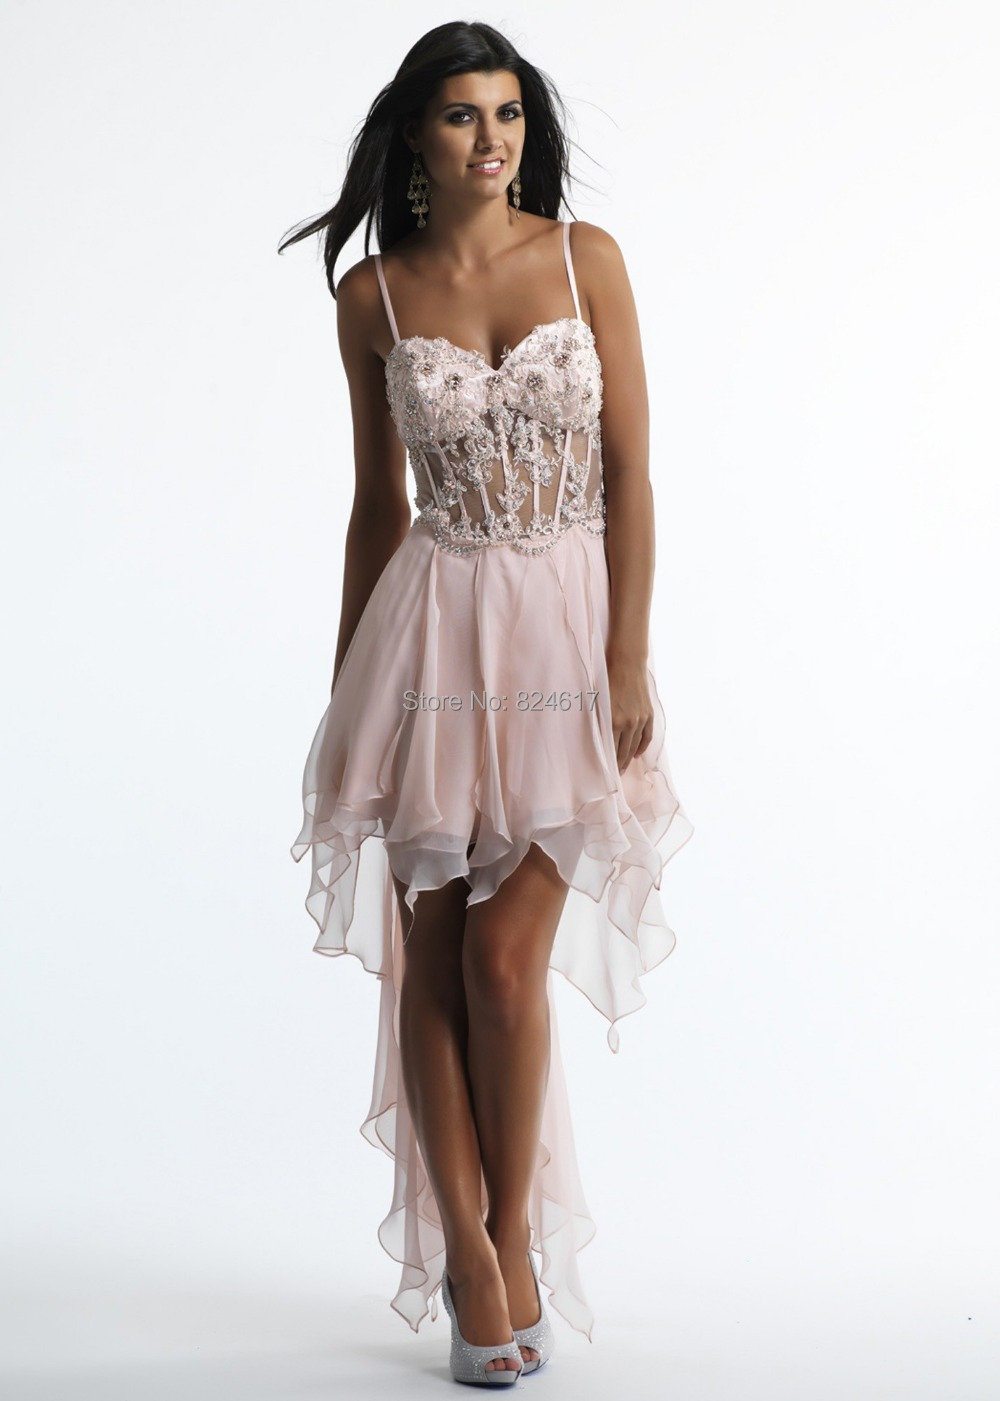 Homecoming Dresses Lace Up Back 85